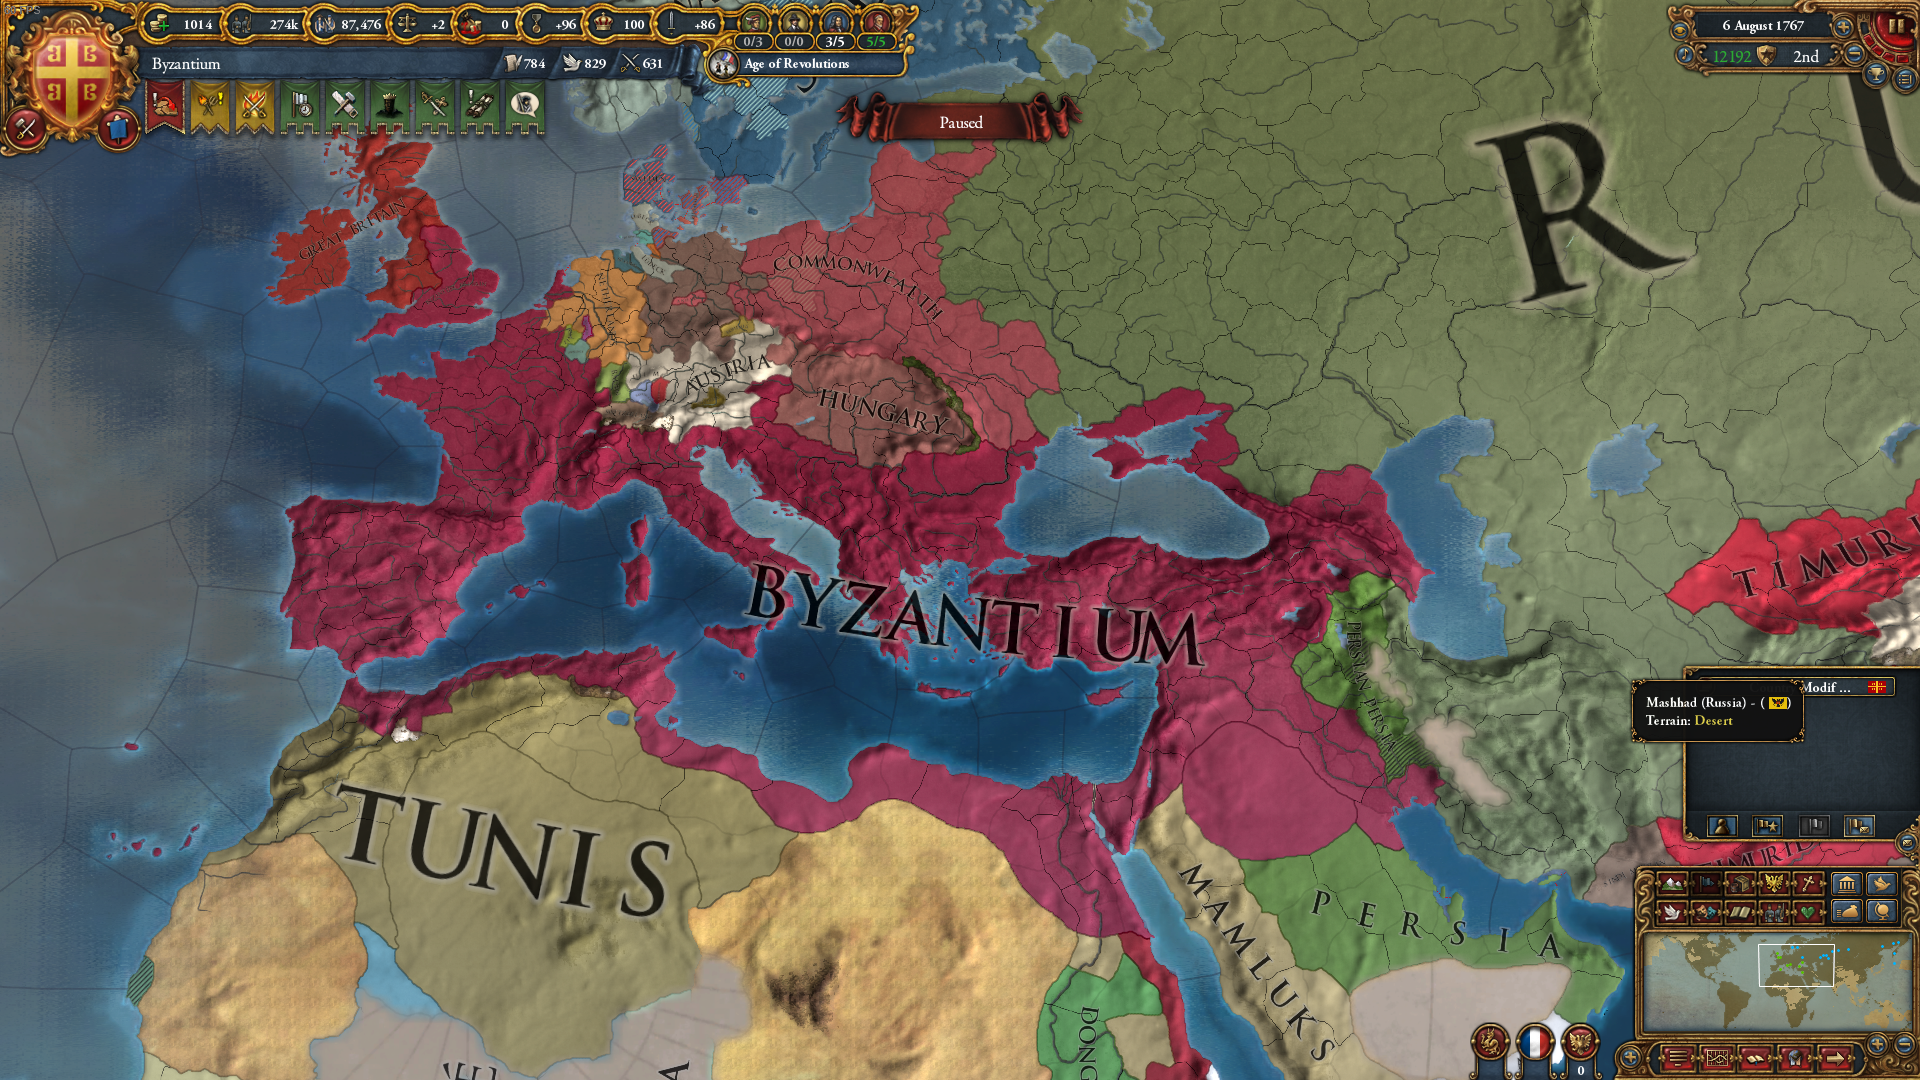 What is it like to play Byzantine Empire in EU4? - Quora